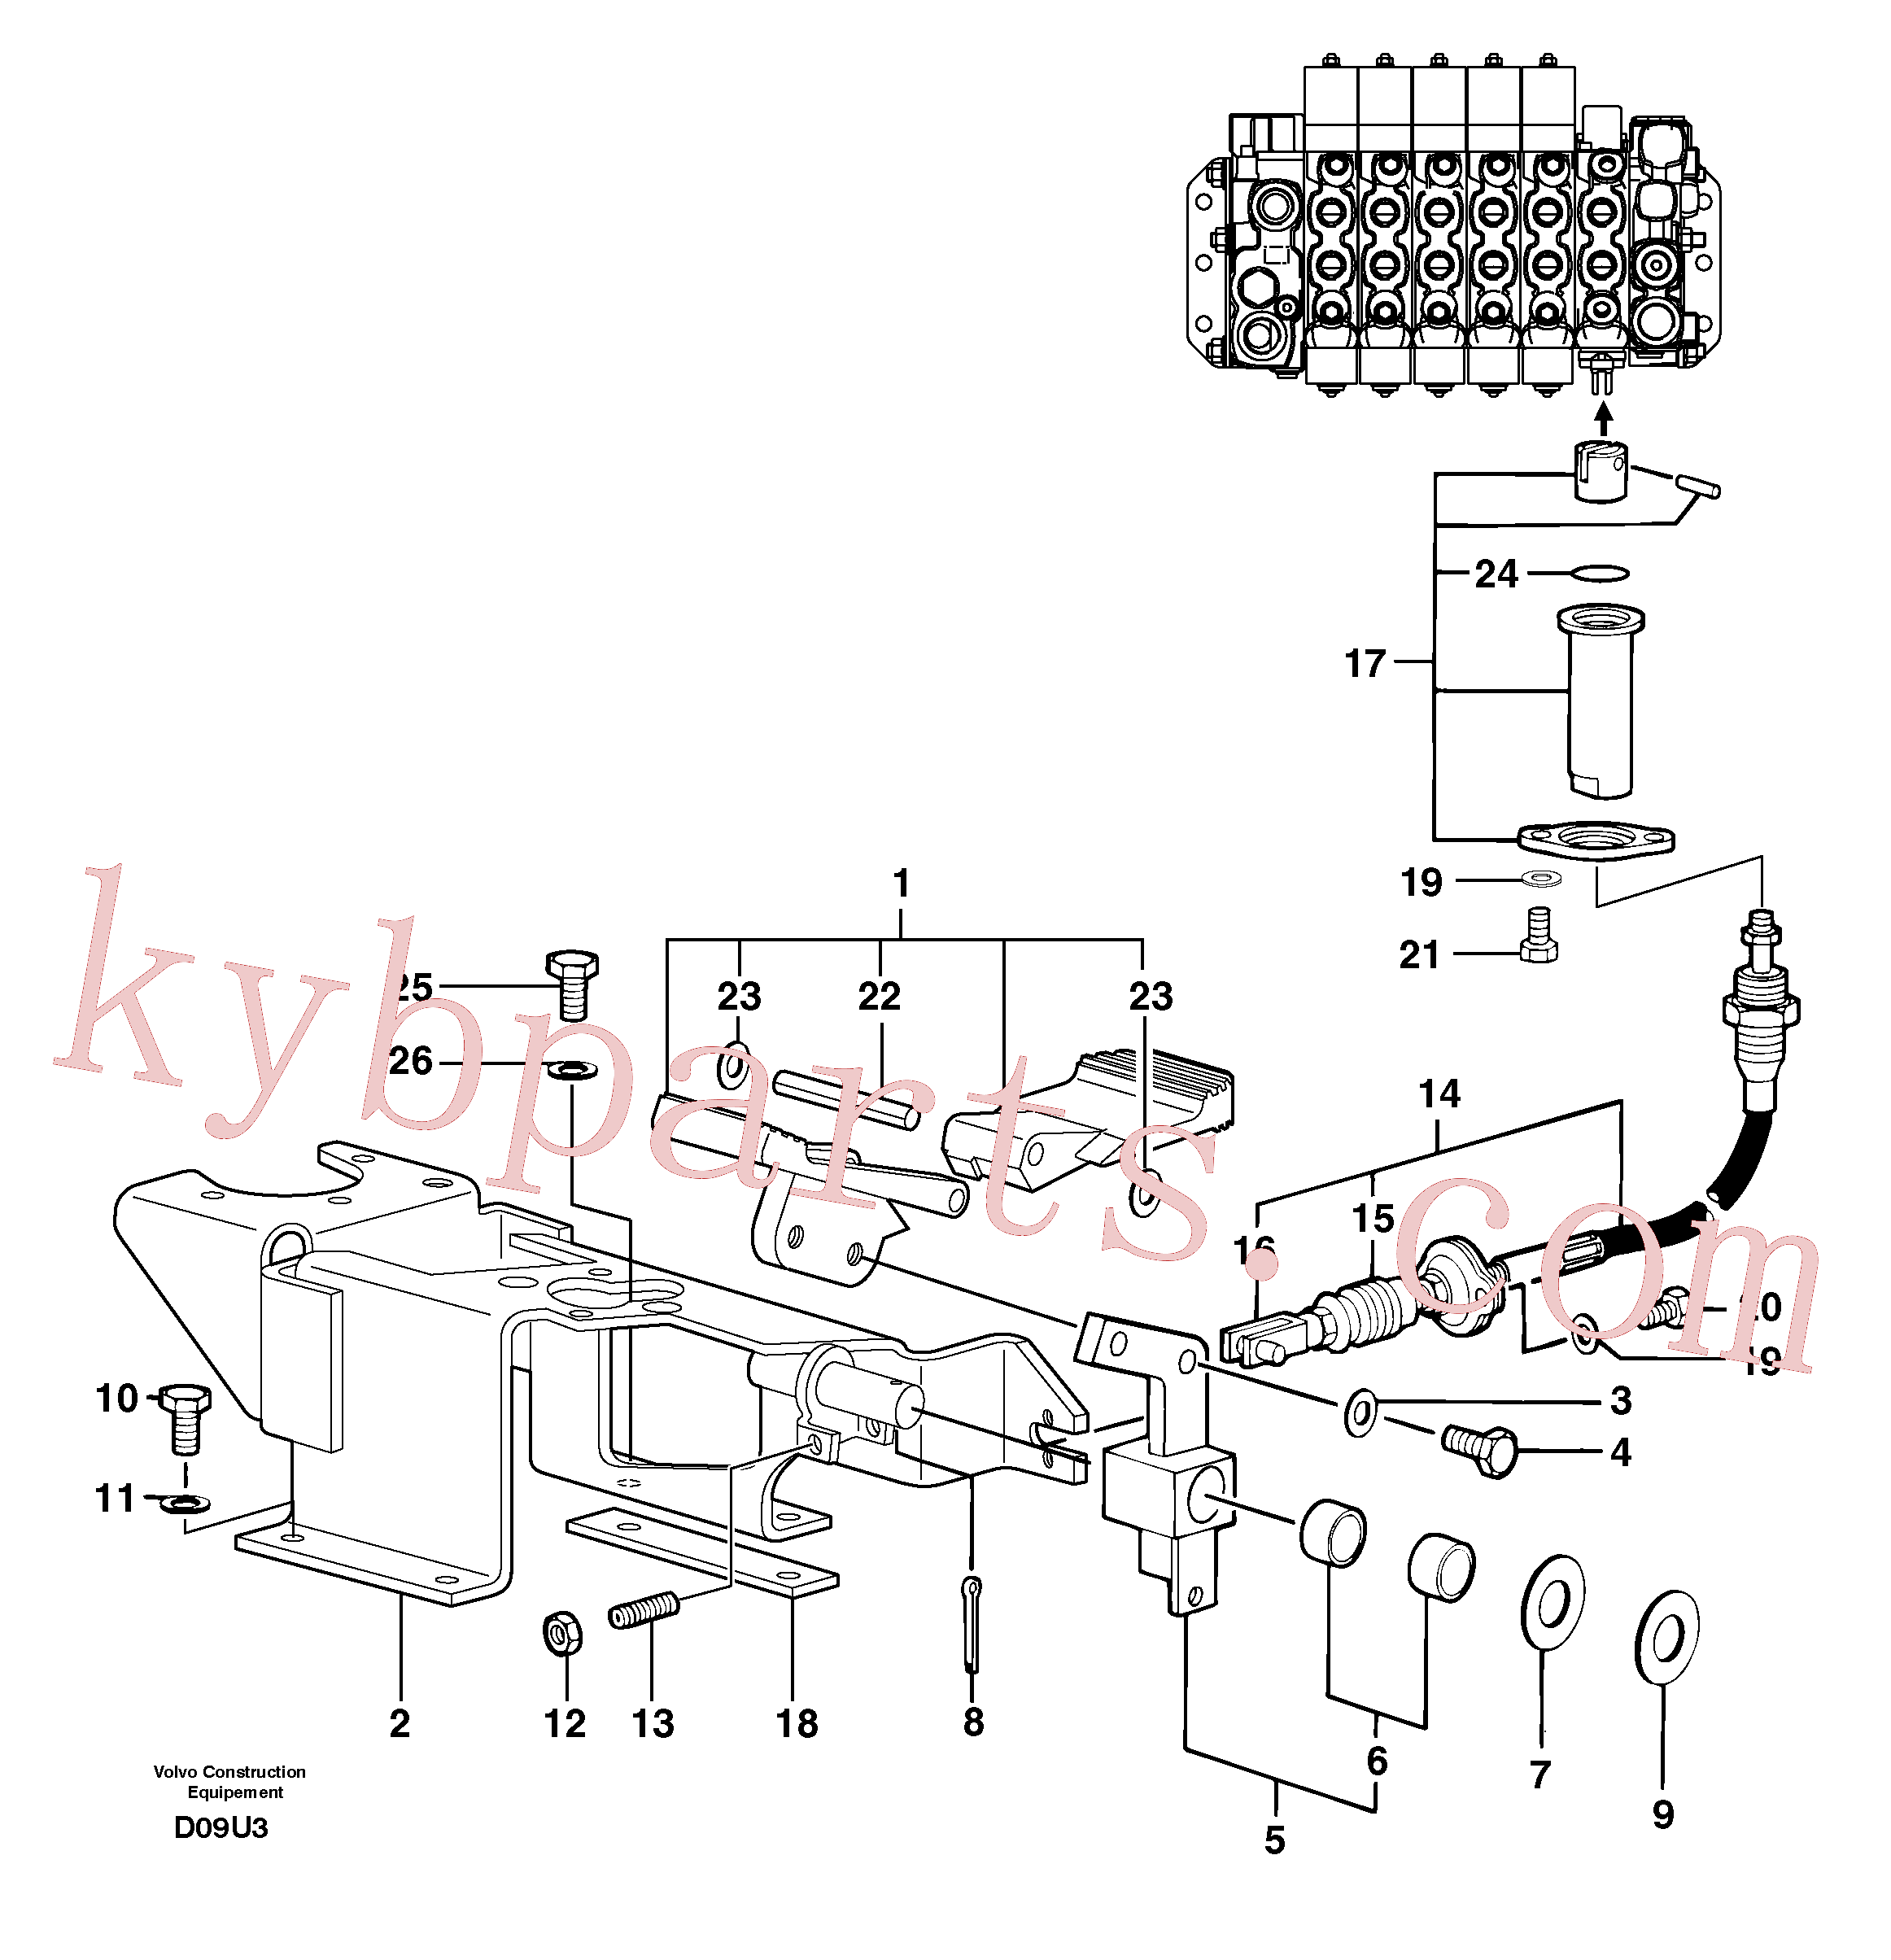 PJ7412468 for Volvo Control pedal : accessories on attachment - 90 l/m(D09U3 assembly)